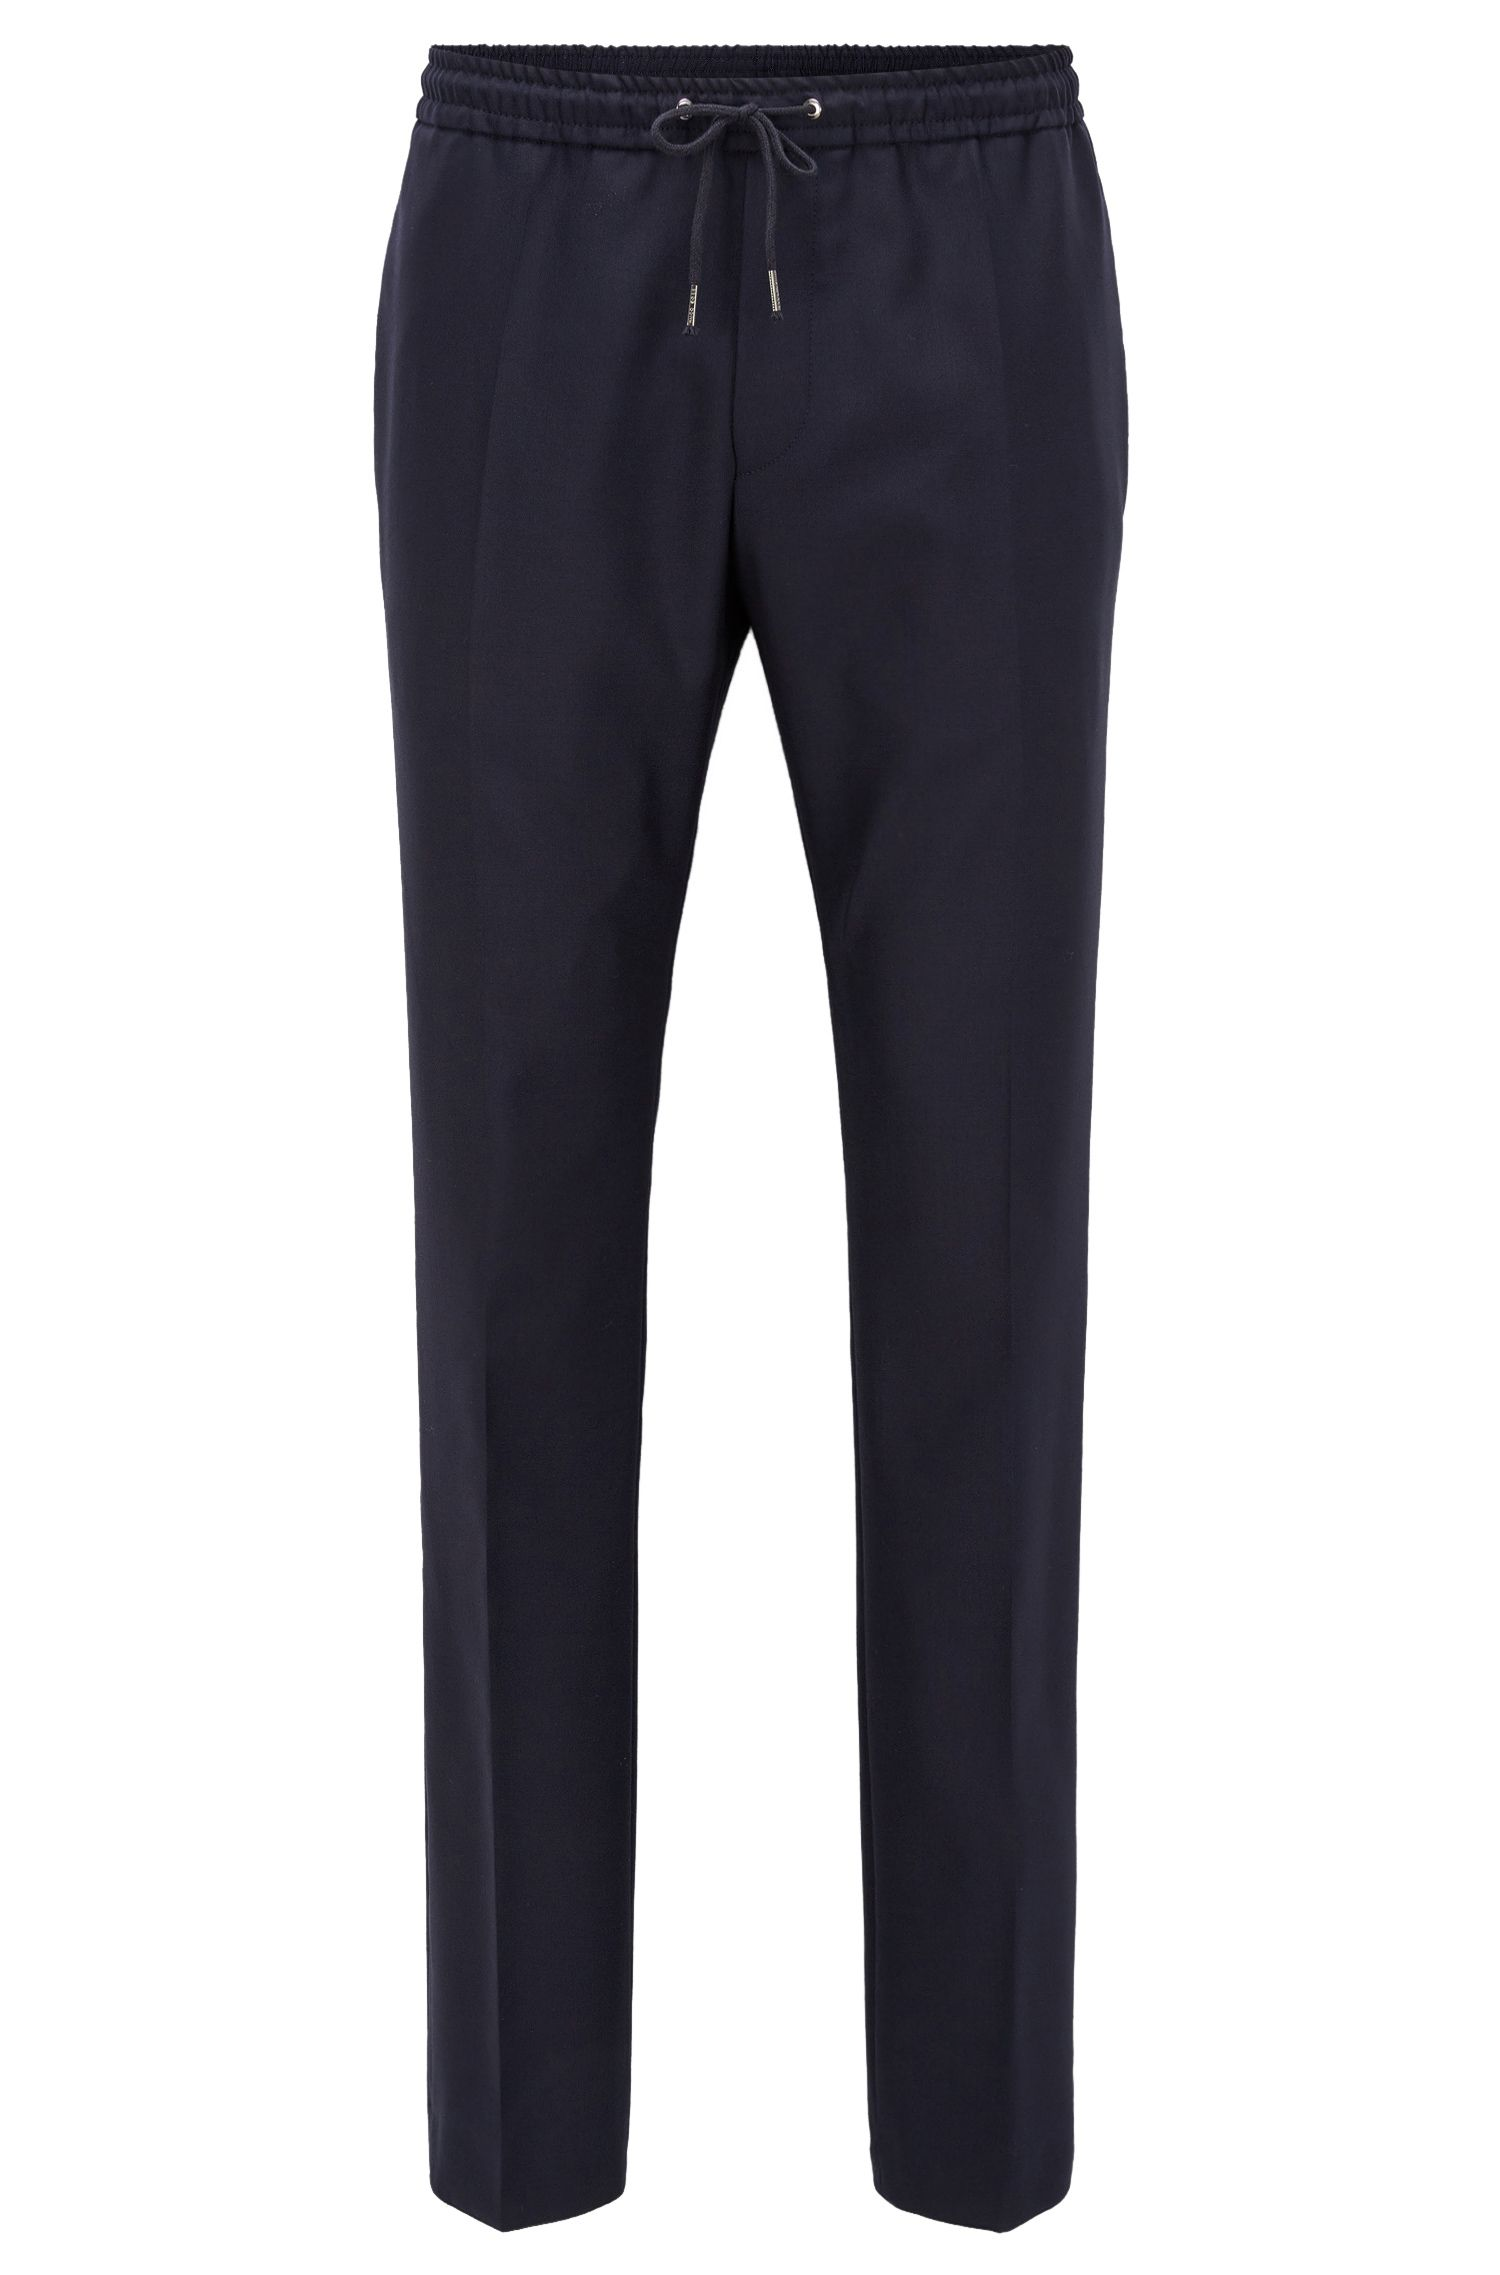 Relaxed-fit drawstring trousers in virgin wool